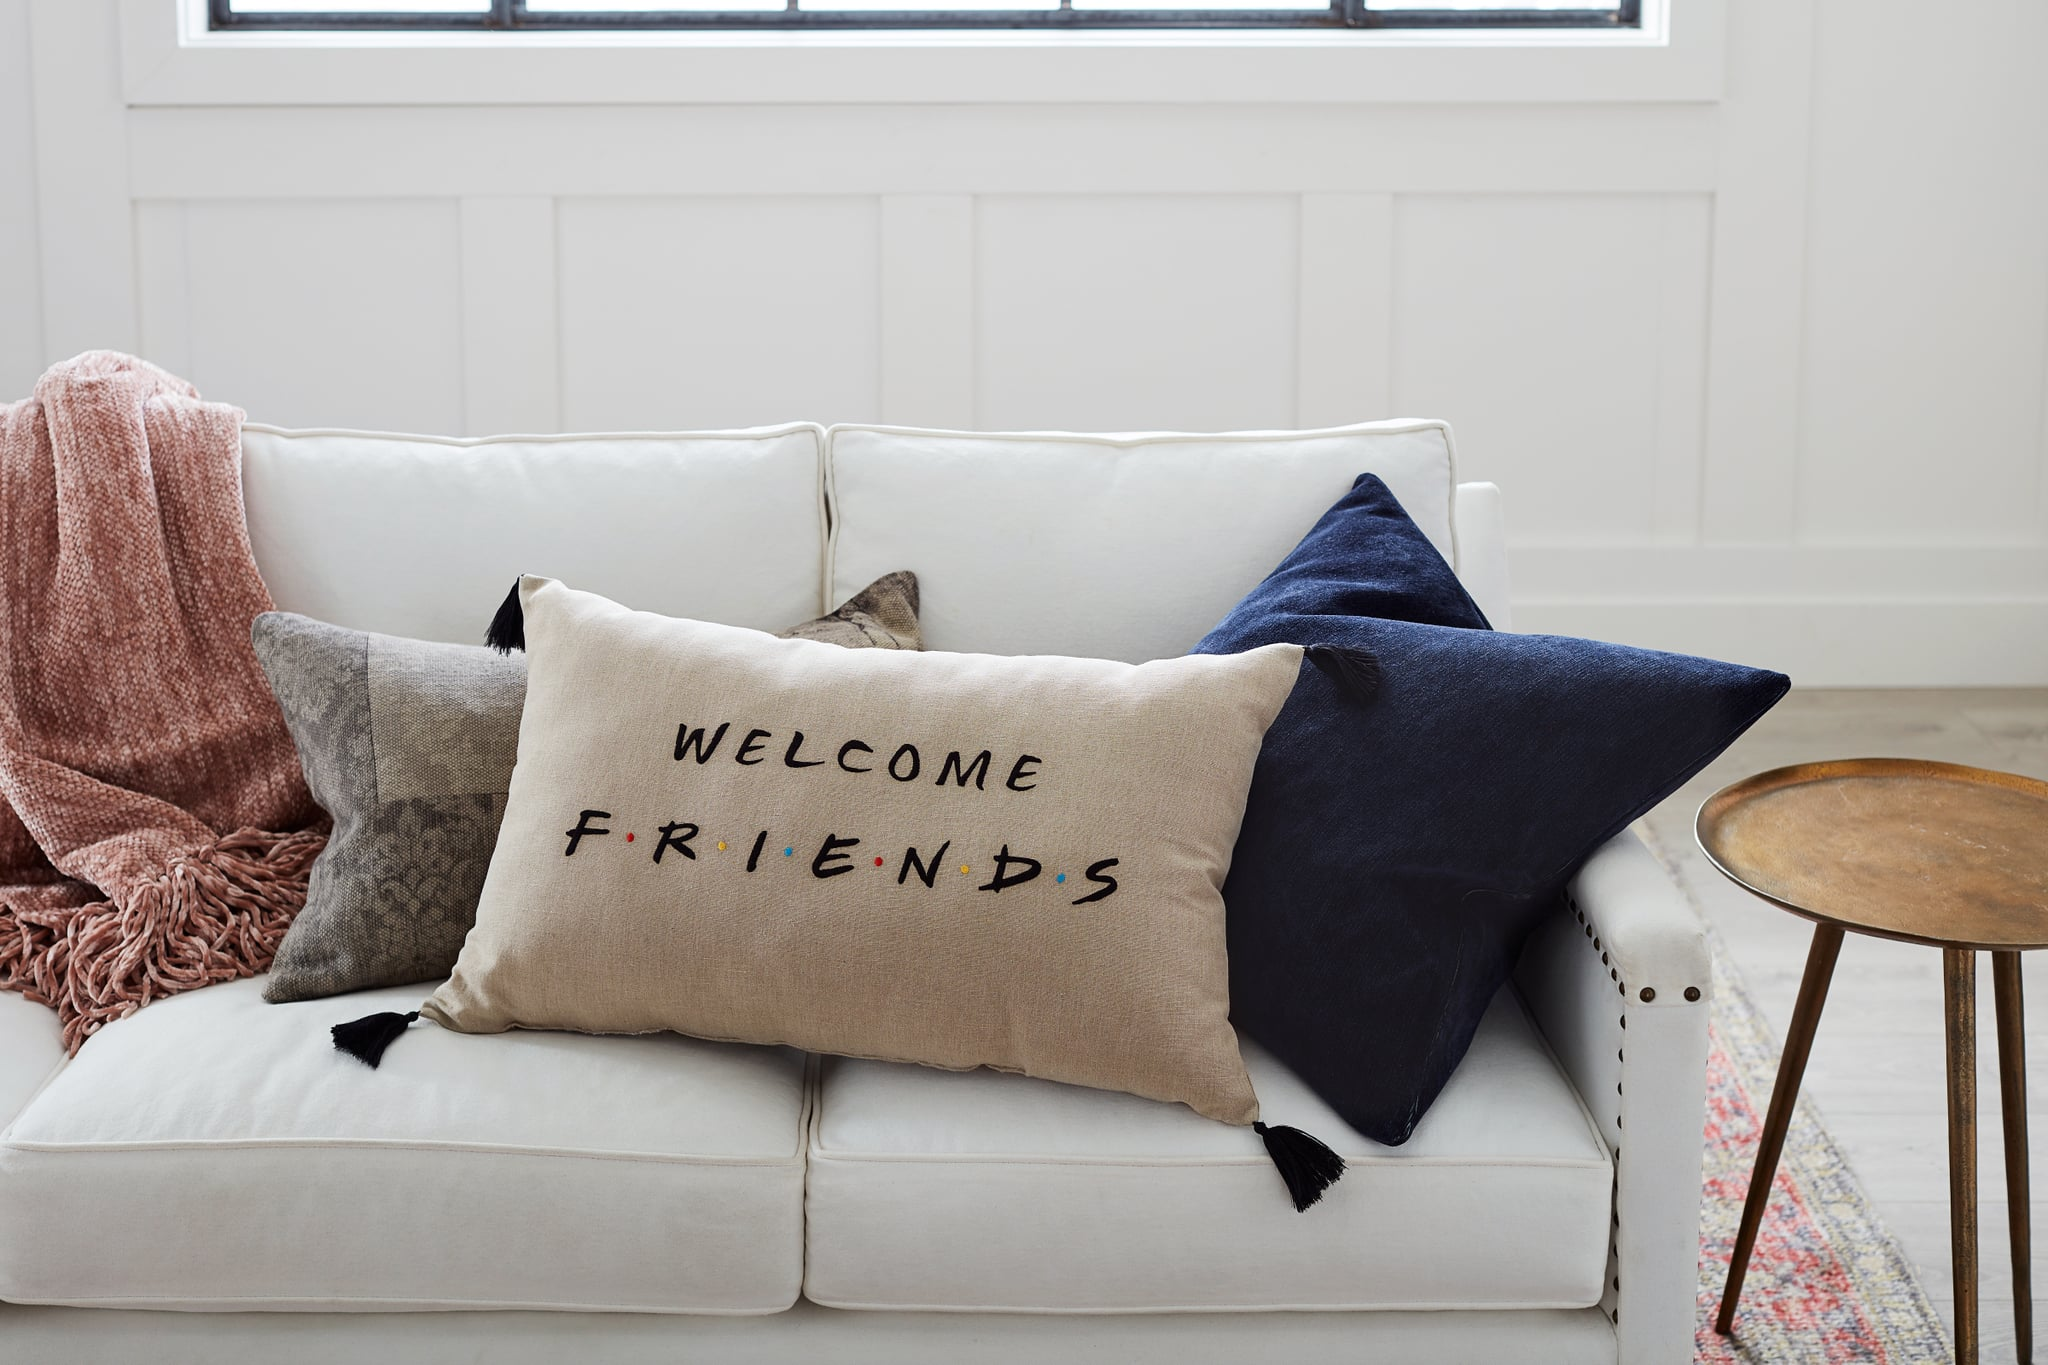 Pottery Barn Friends Collection Photos Popsugar Home